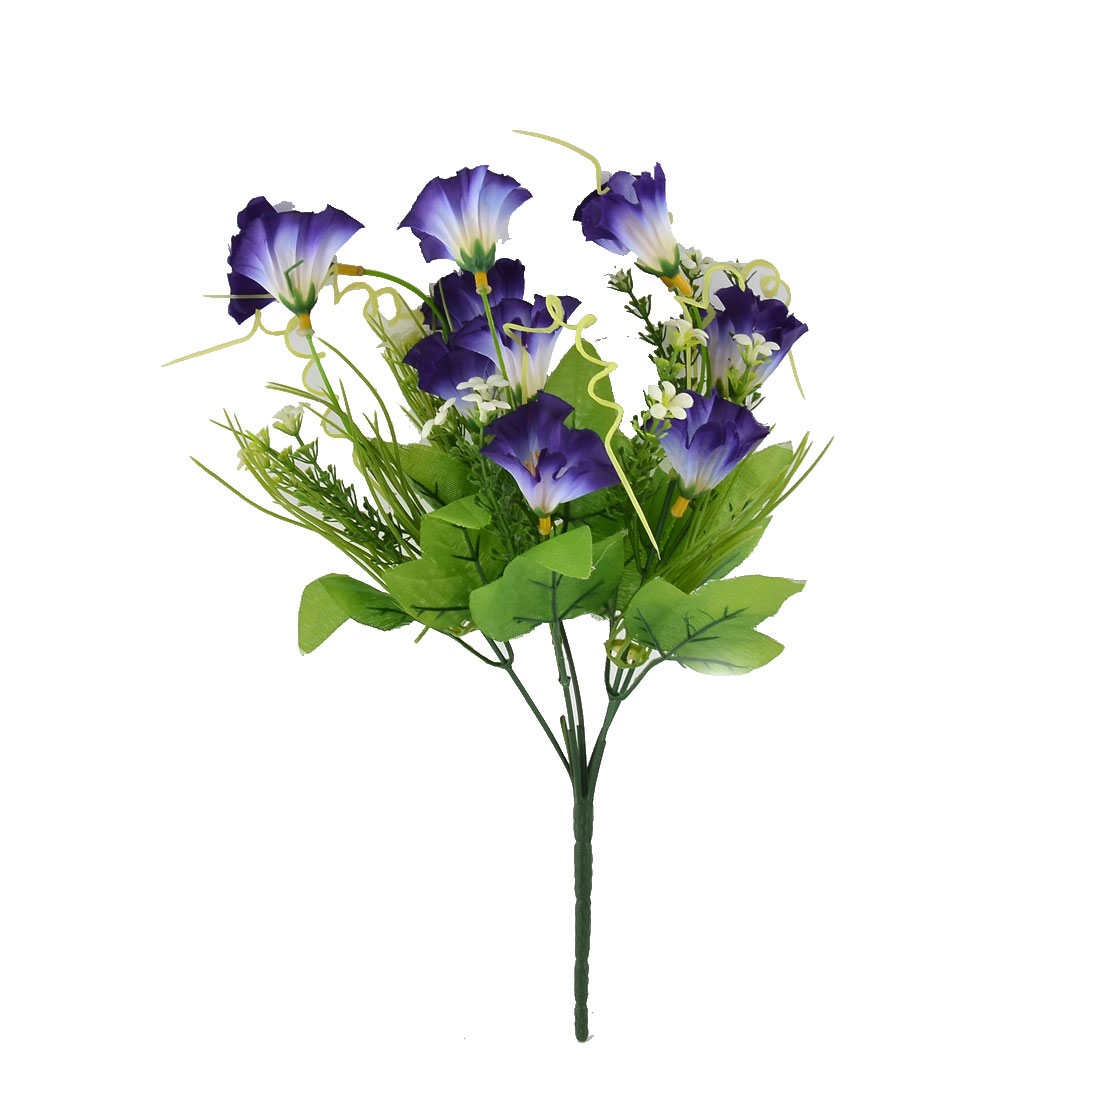 Artificial Emulational Flower Bouquet Bedroom Dormitory Decoration Purple